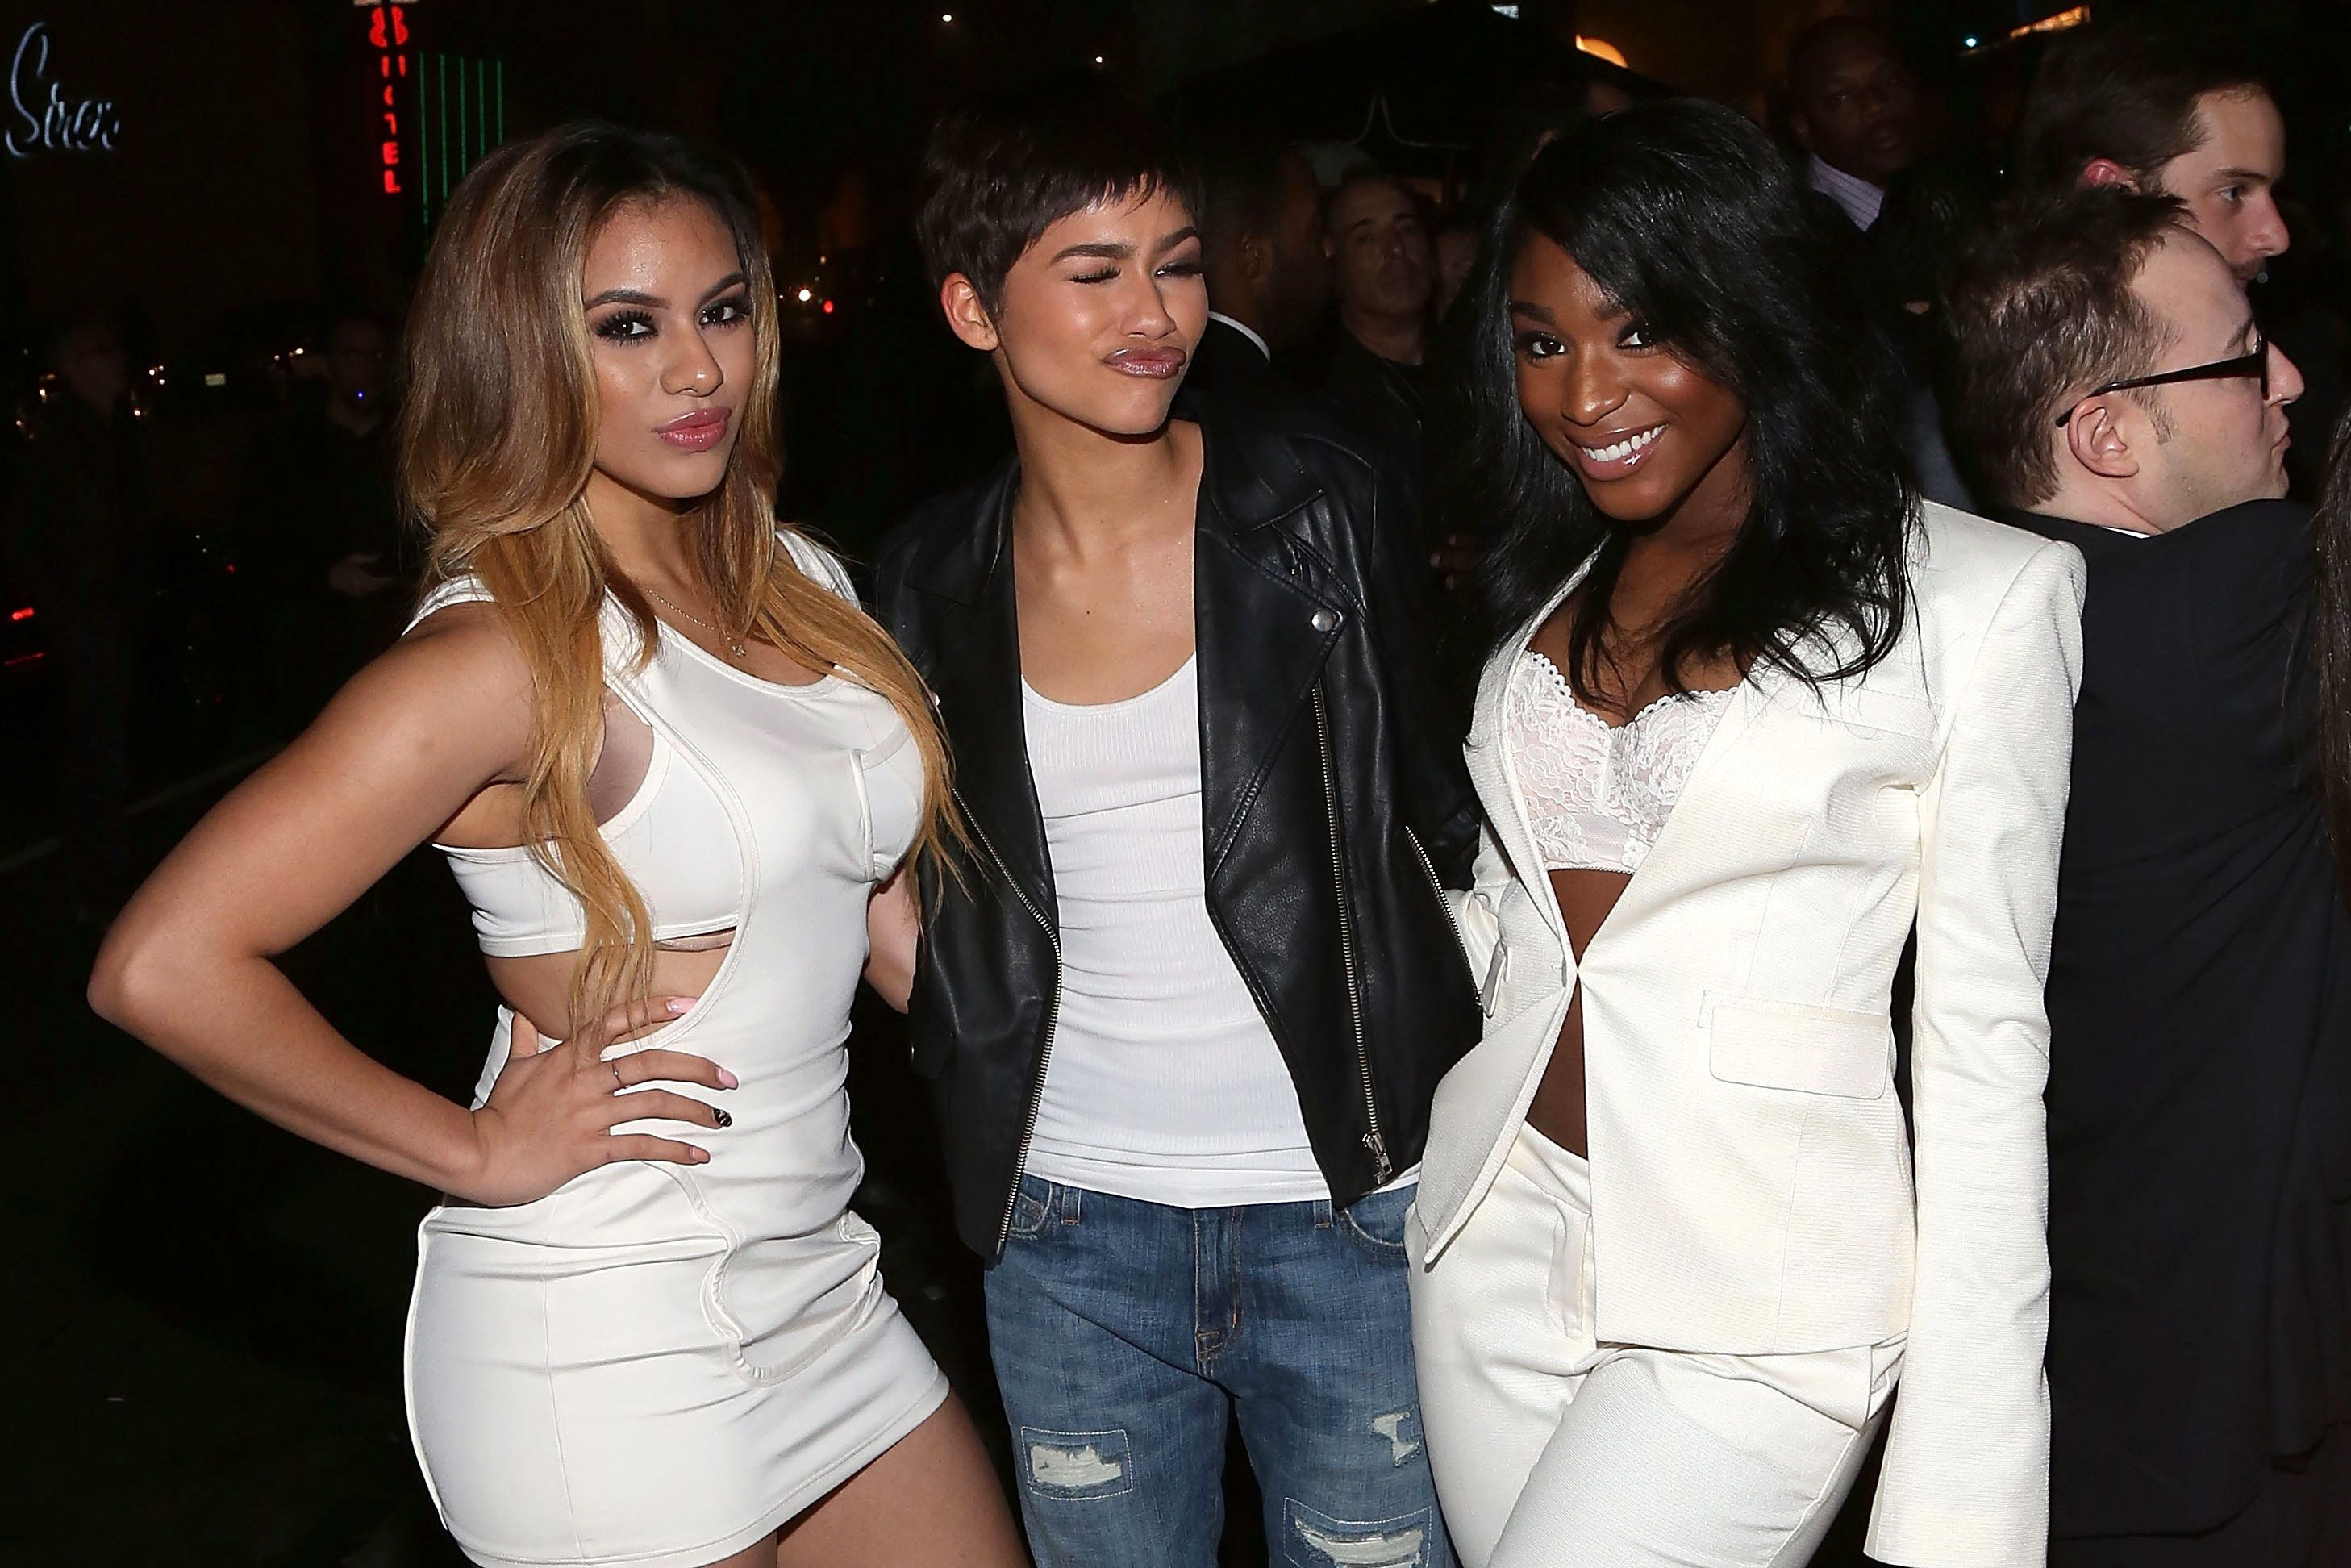 LOS ANGELES, CA - FEBRUARY 08:  Dinah-Jane Hansen, Zendaya, and Normani Kordei attend the 2015 Republic Records And Big Machine Label Group Post GRAMMY Celebration at Warwick on February 8, 2015 in Los Angeles, California.  (Photo by Taylor Hill/FilmMagic)